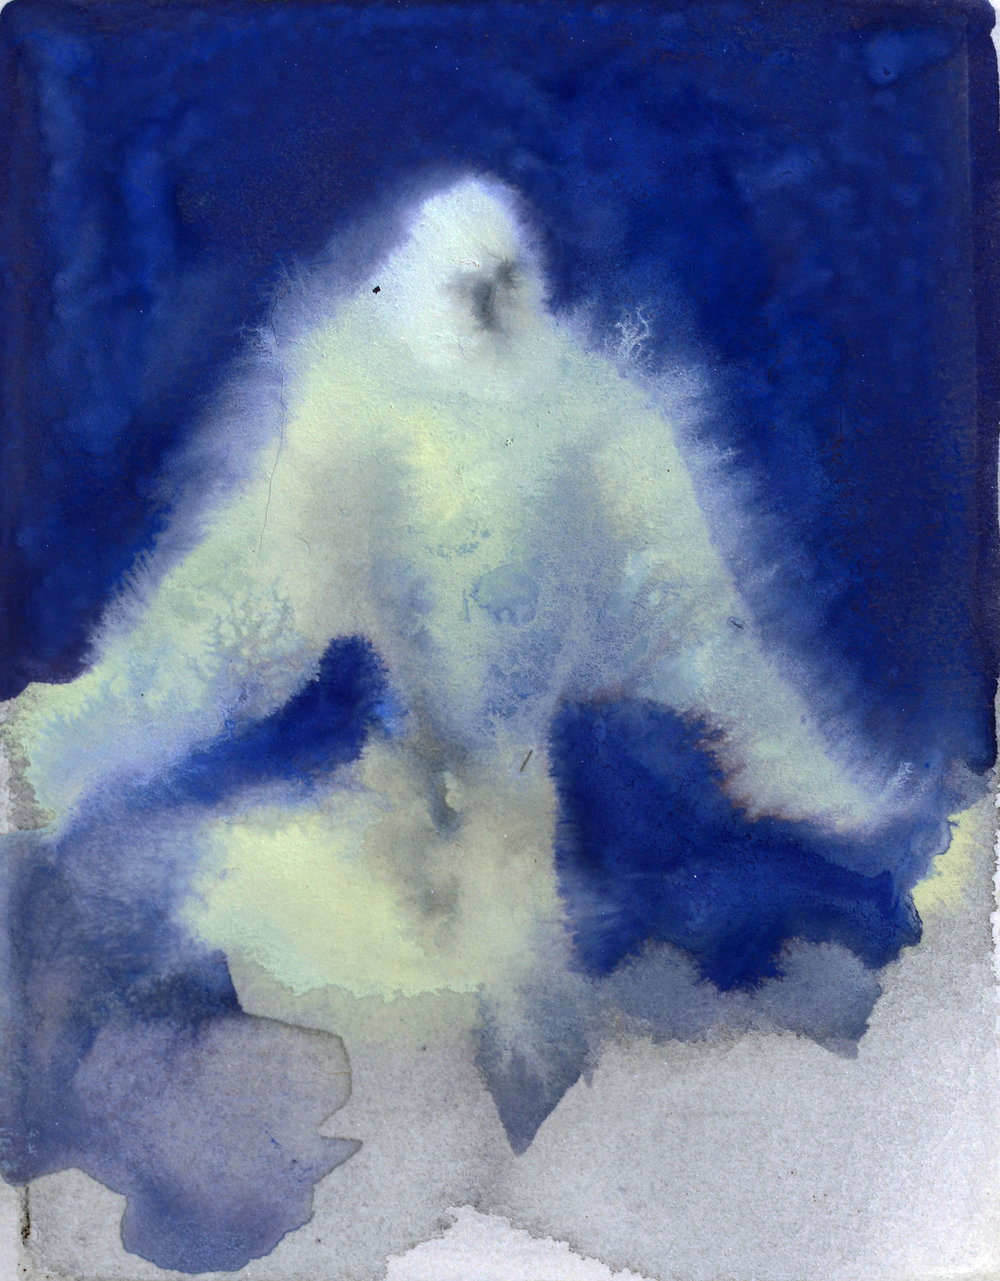 Rebecca_Kinkead_White Dove (Night)_4x3 inset on 11x7.5.jpg